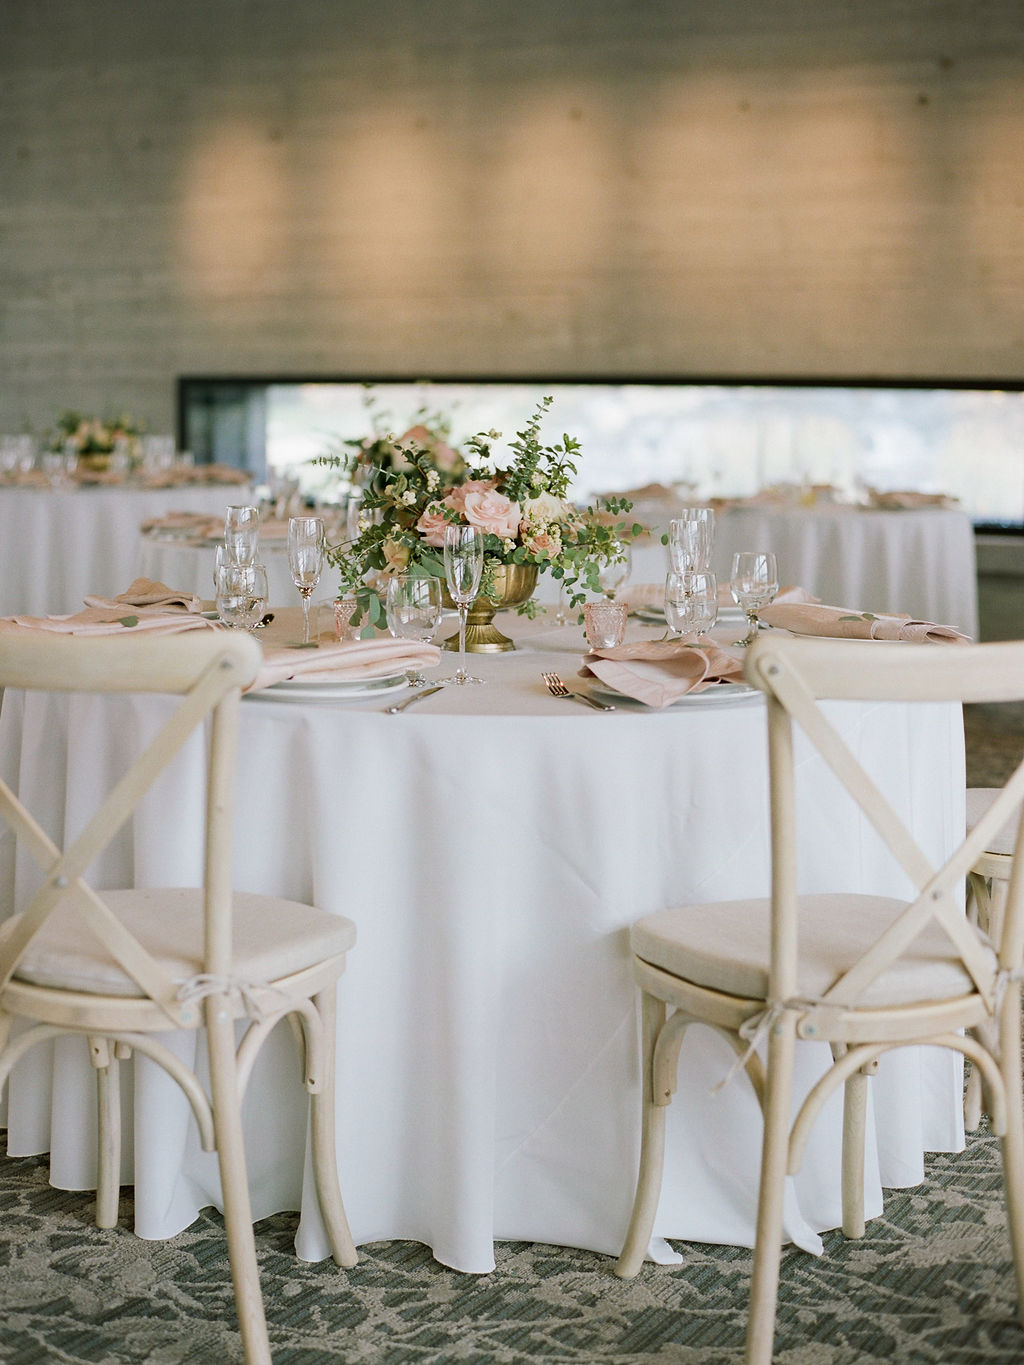 Karli and David, Willowbridge Wedding, Ira and Lucy Wedding Planner and Design, Brie Thomason Photography